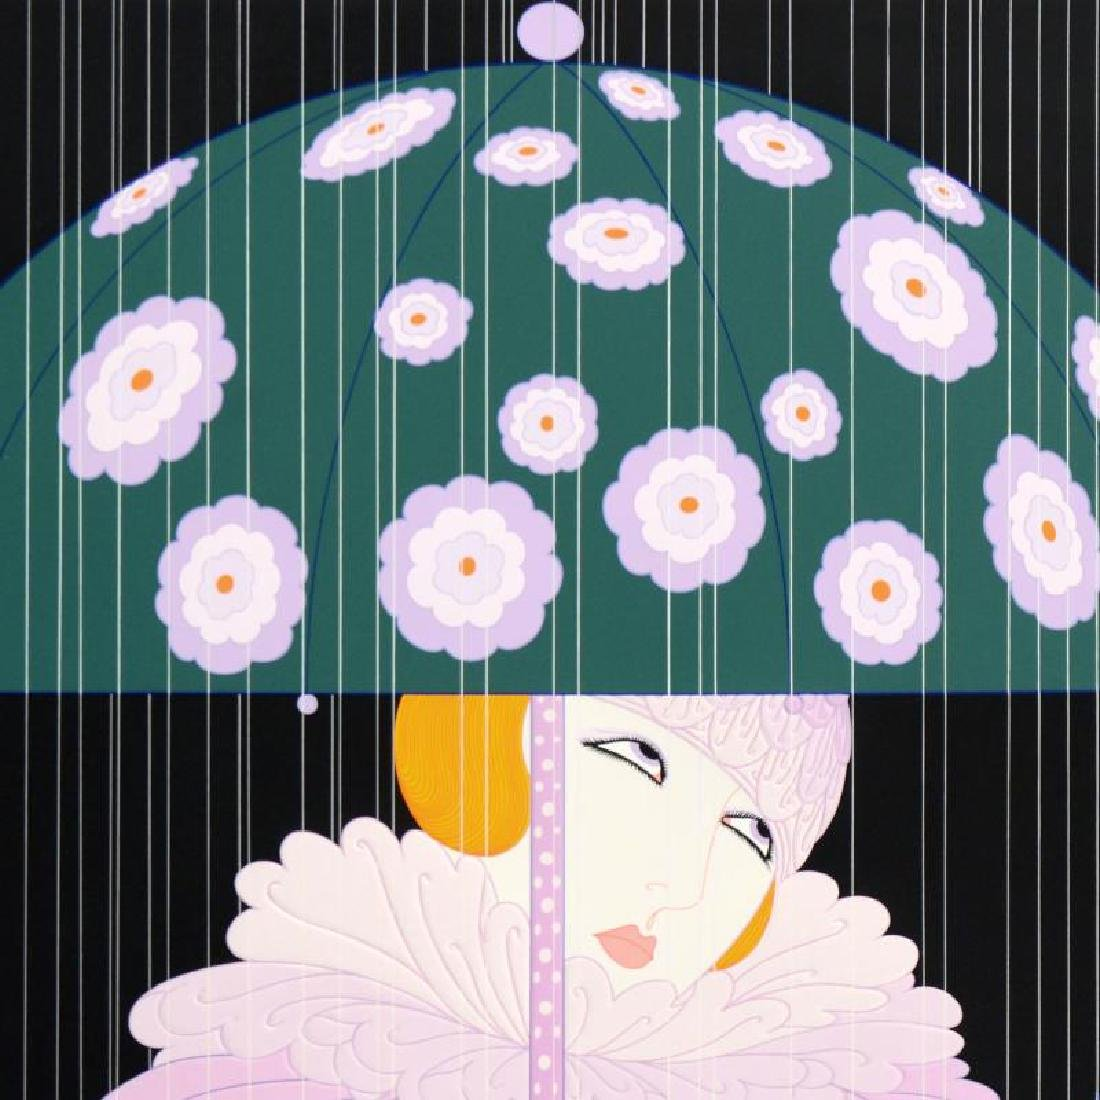 Spring Showers by Erte (1892-1990) - 2